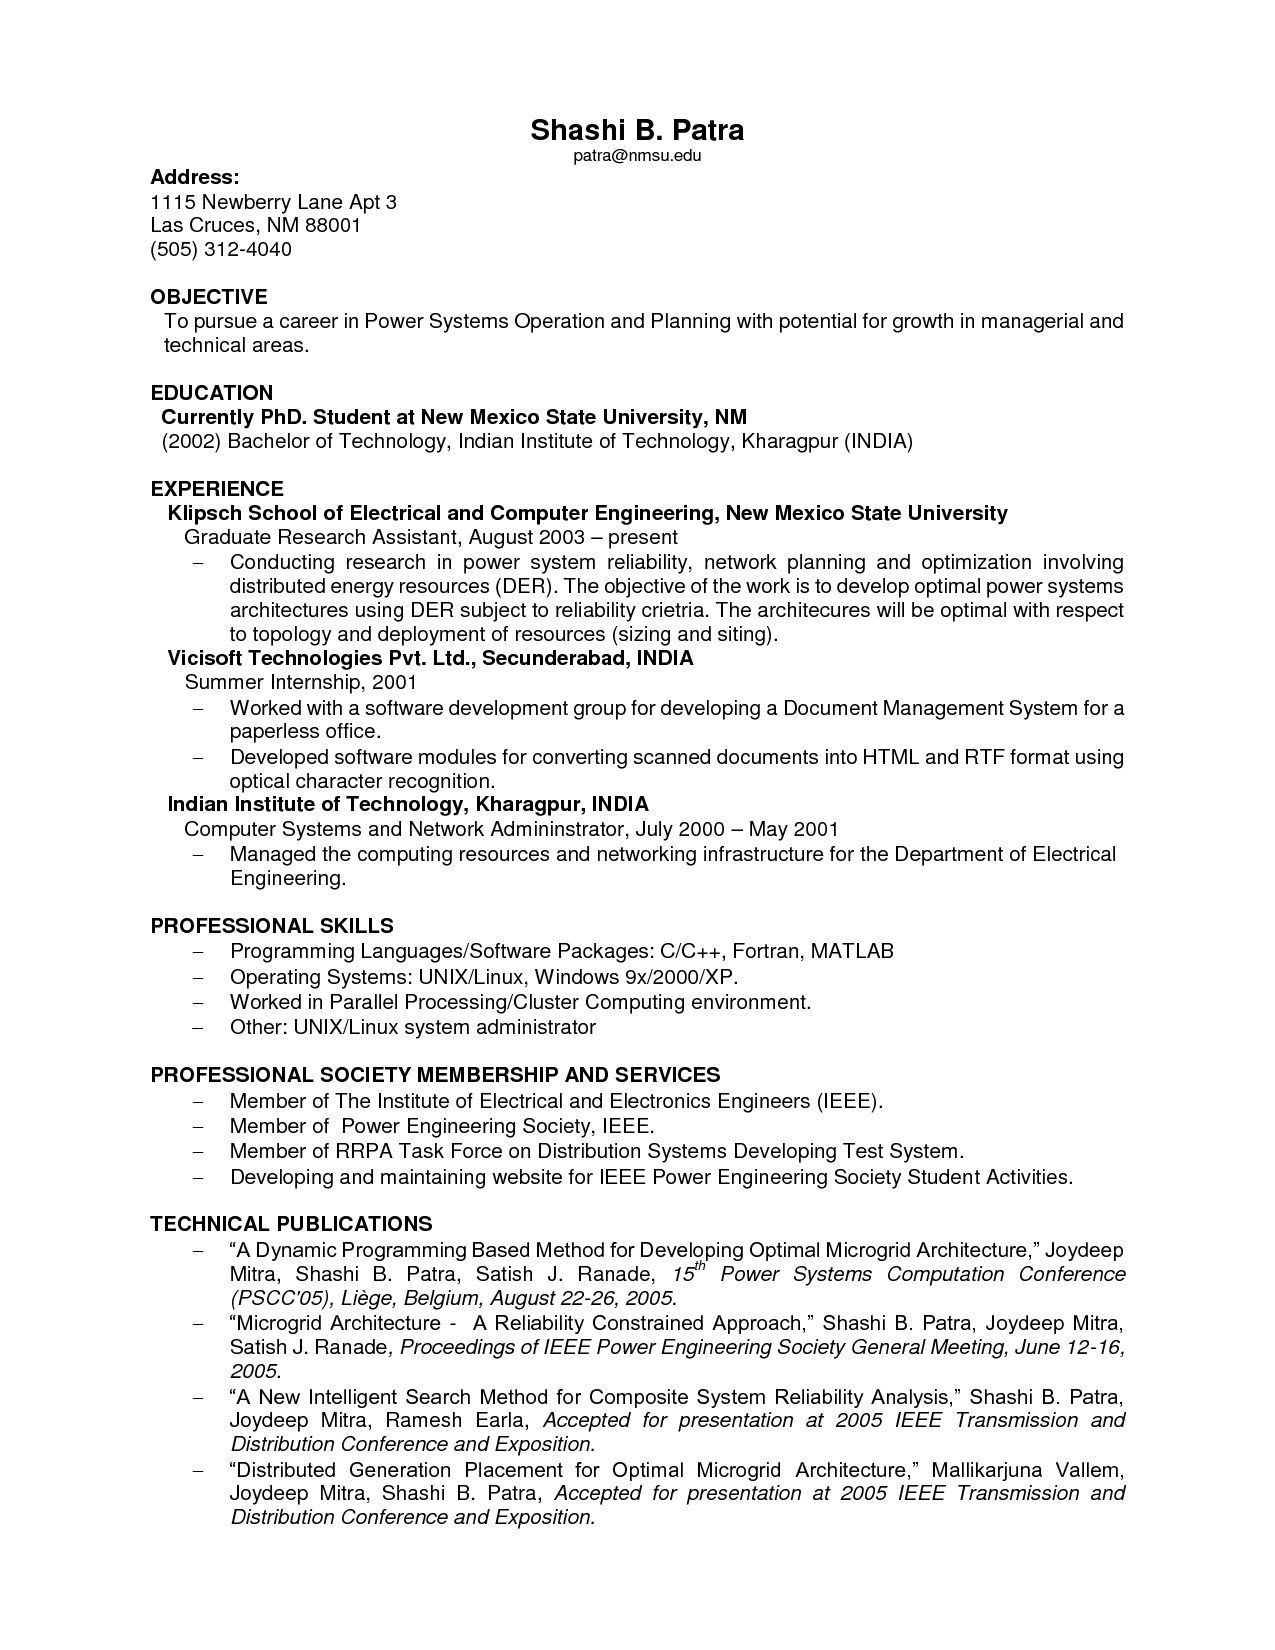 Resume Samples No Experience - Resume Templates for Students with No Experience Valid Resume for No